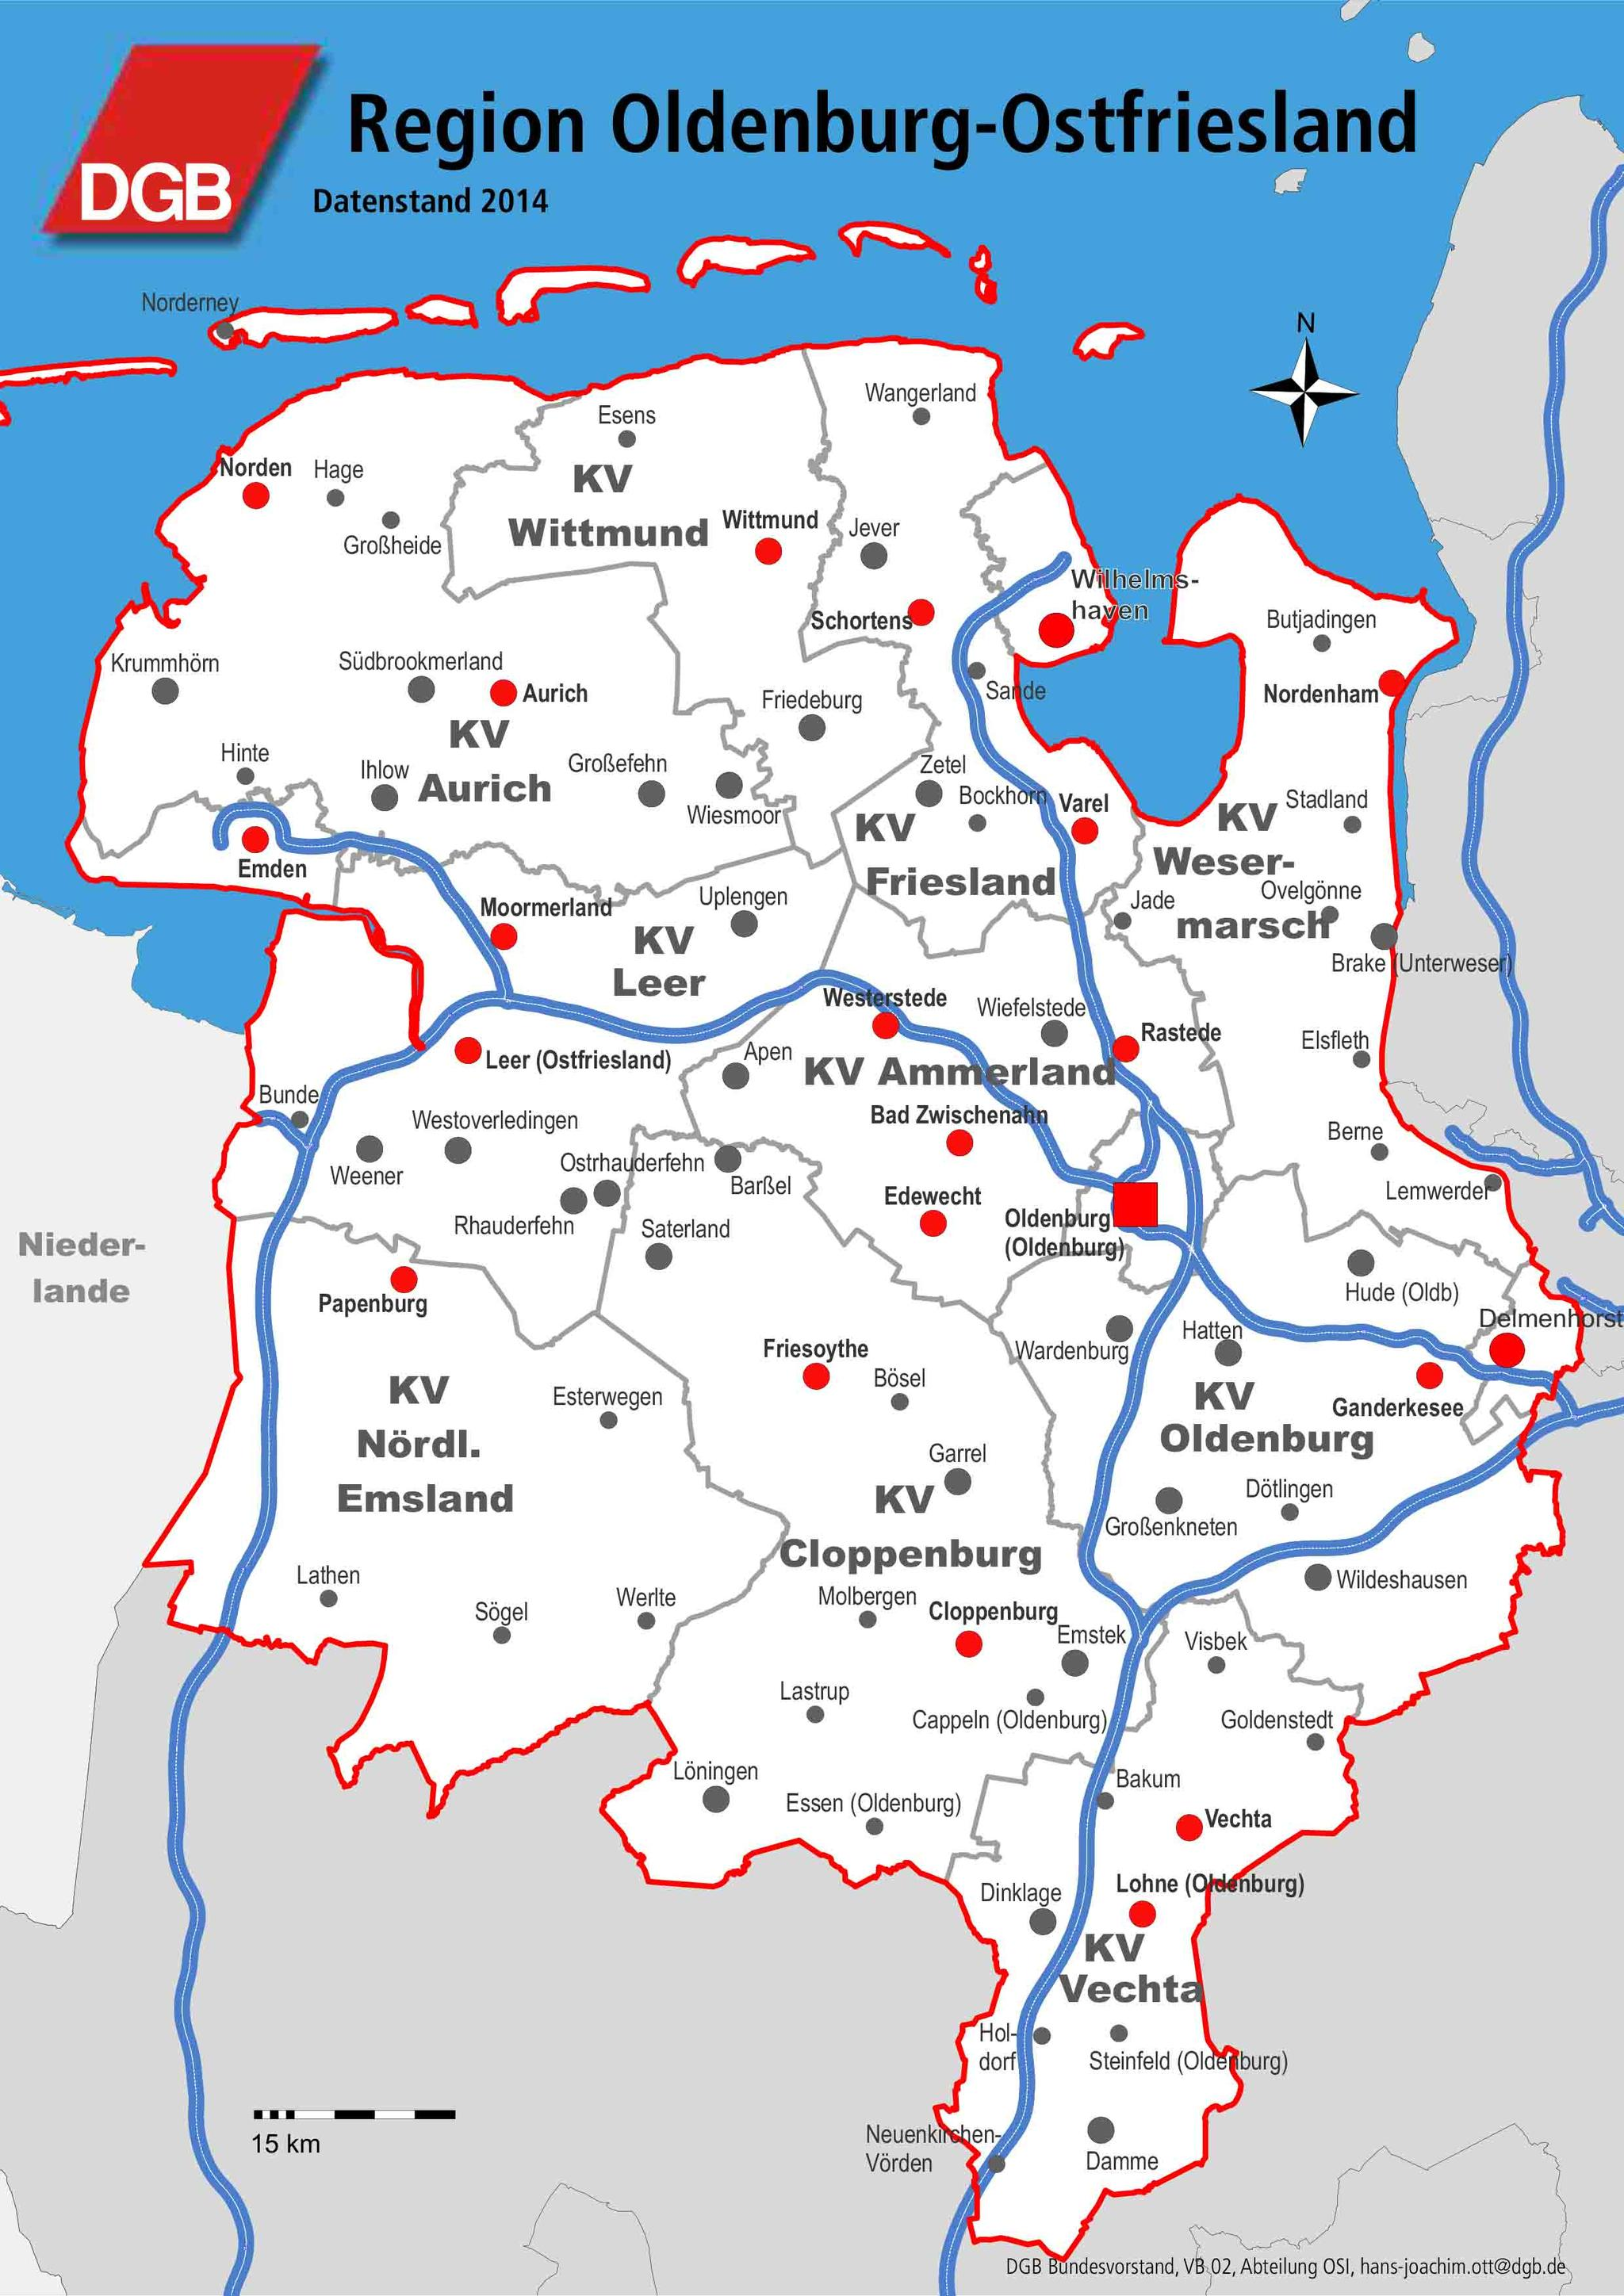 DGB Region Oldenburg-Ostfriesland